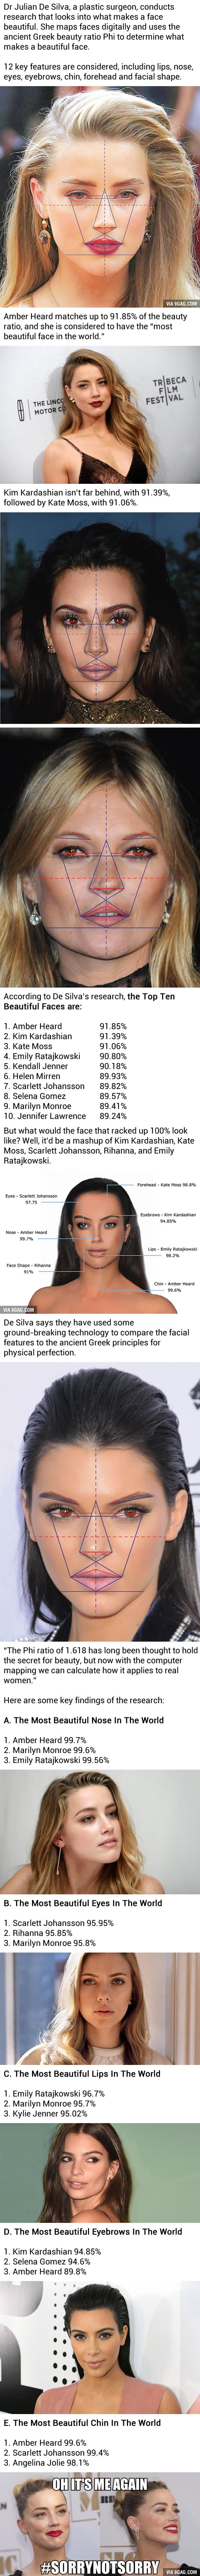 Top 10 Most Beautiful Faces According To Science